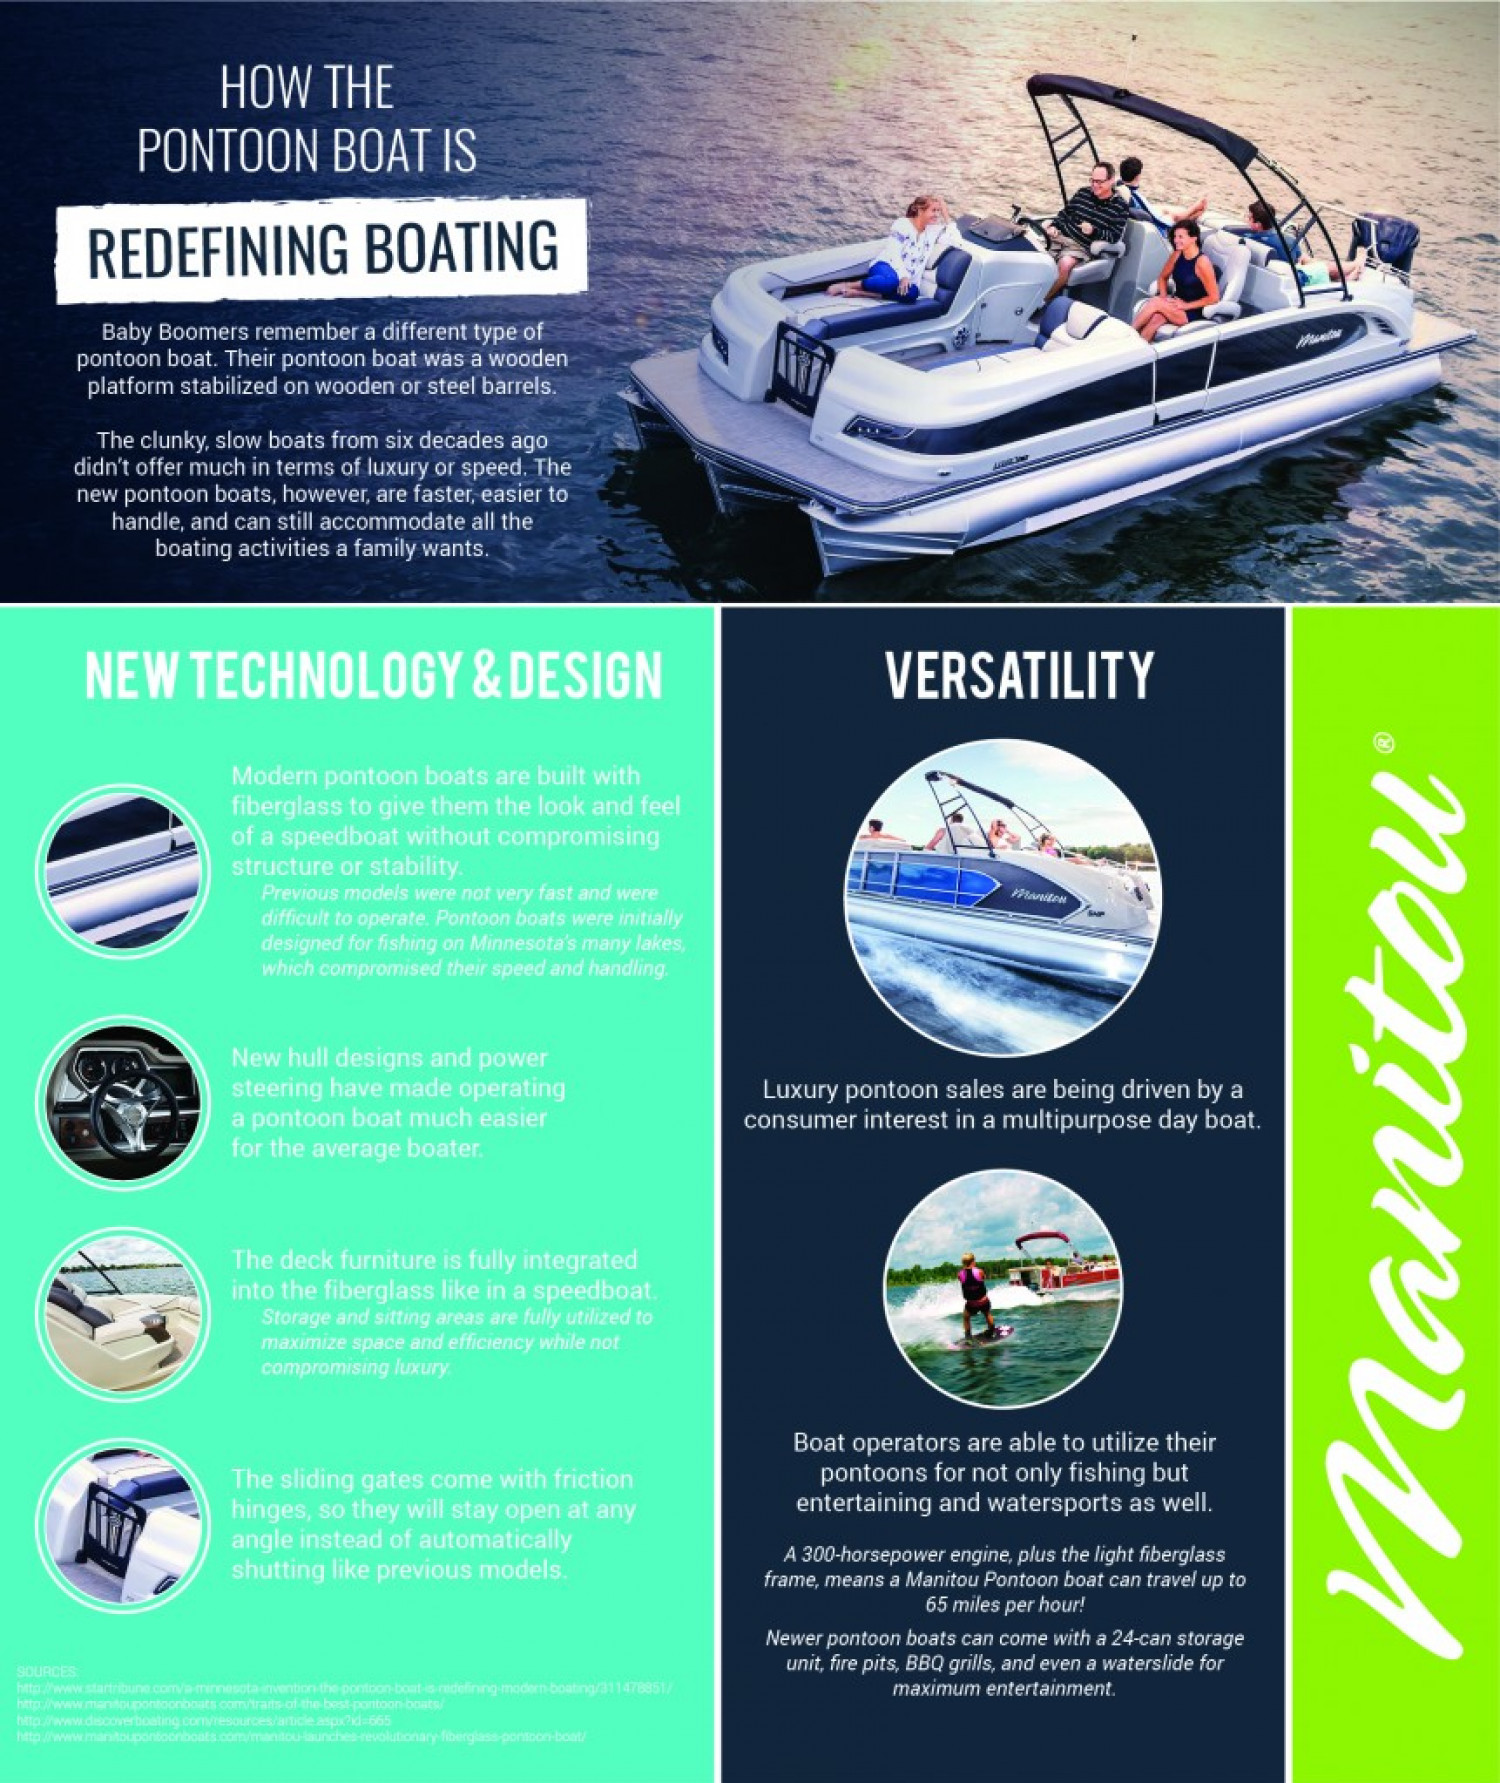 How the Pontoon Boat Is Redefining Boating Infographic